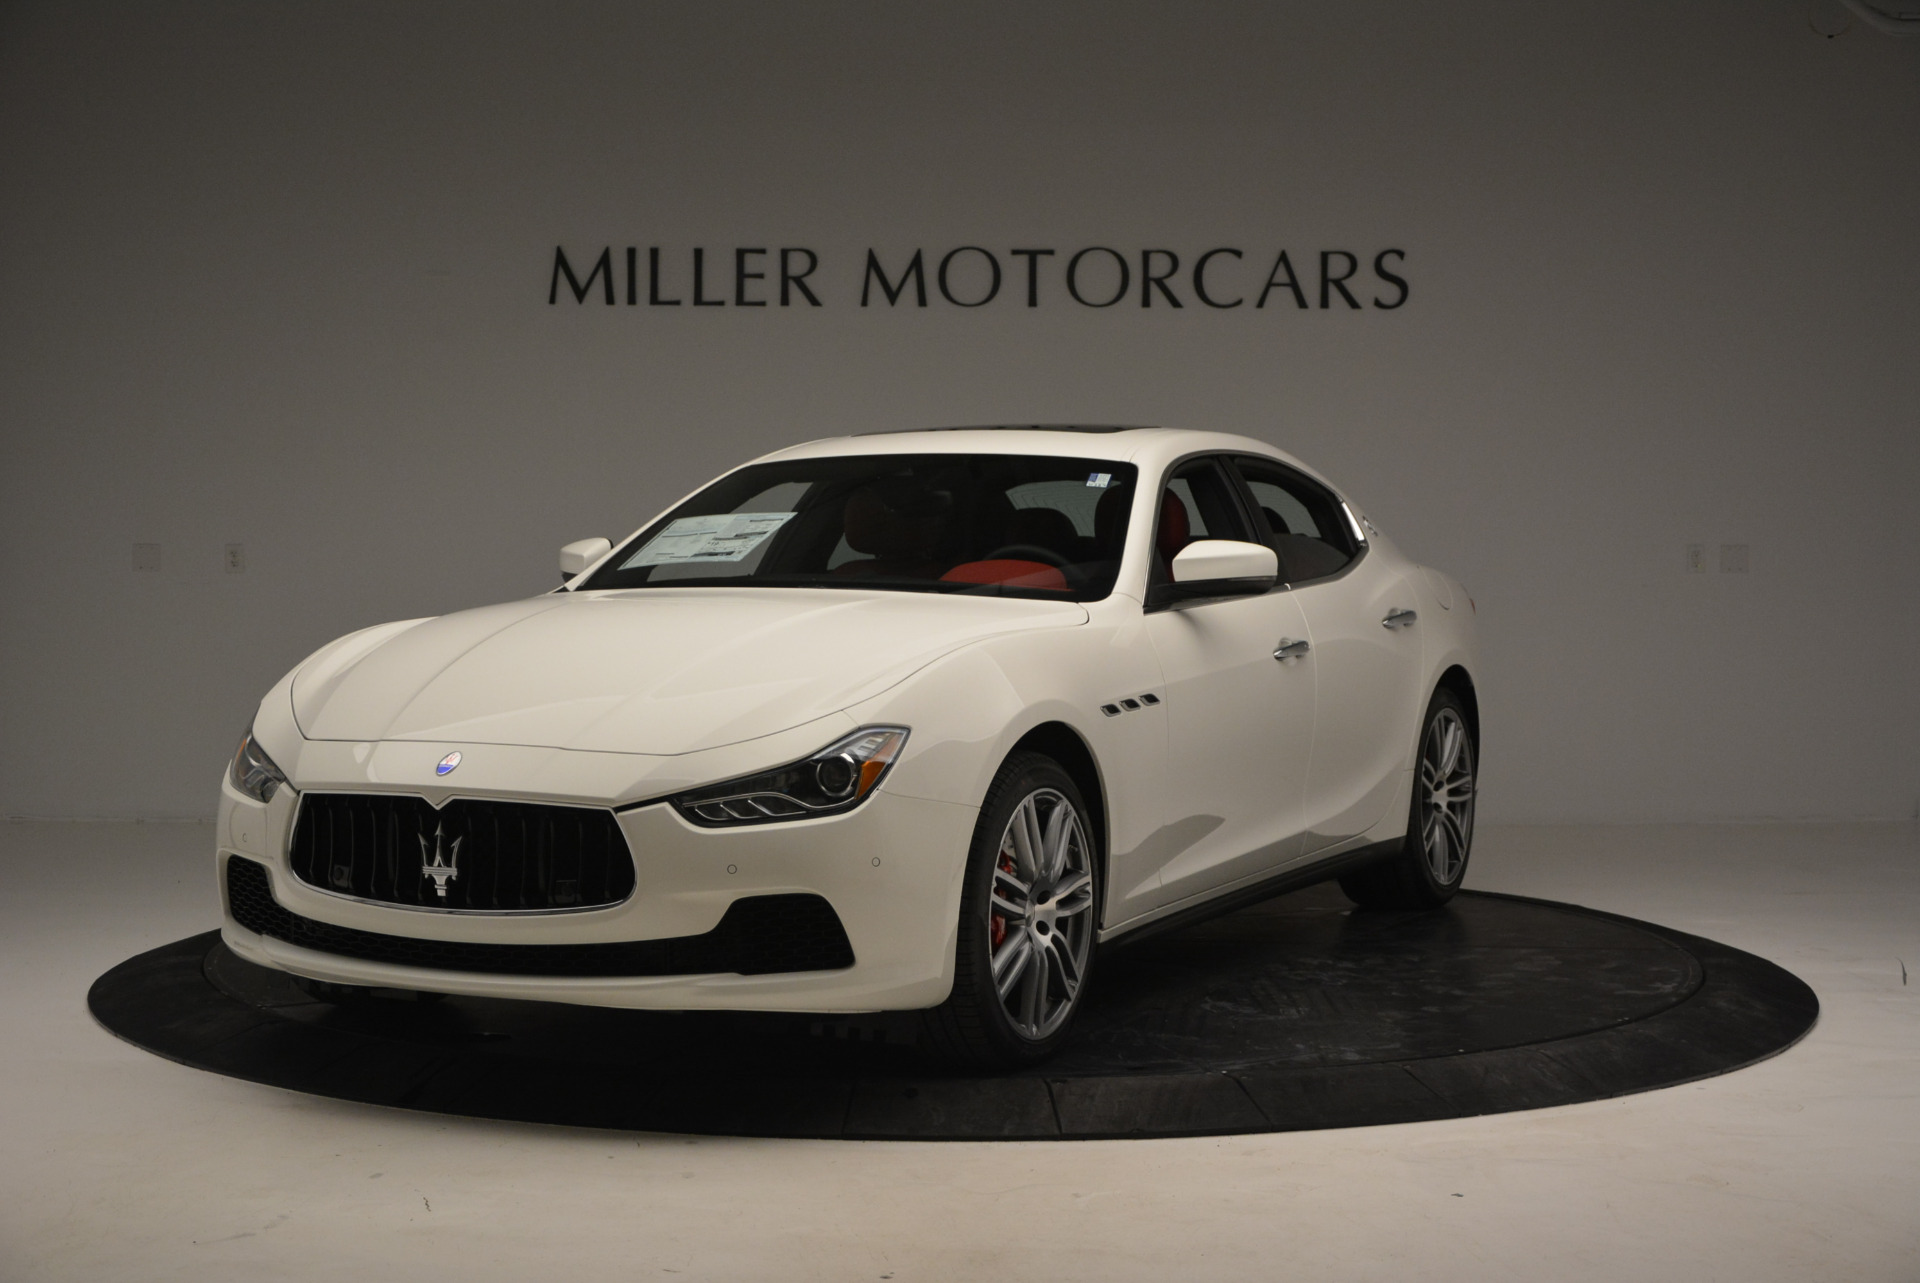 Used 2017 Maserati Ghibli S Q4 for sale $49,900 at Bentley Greenwich in Greenwich CT 06830 1